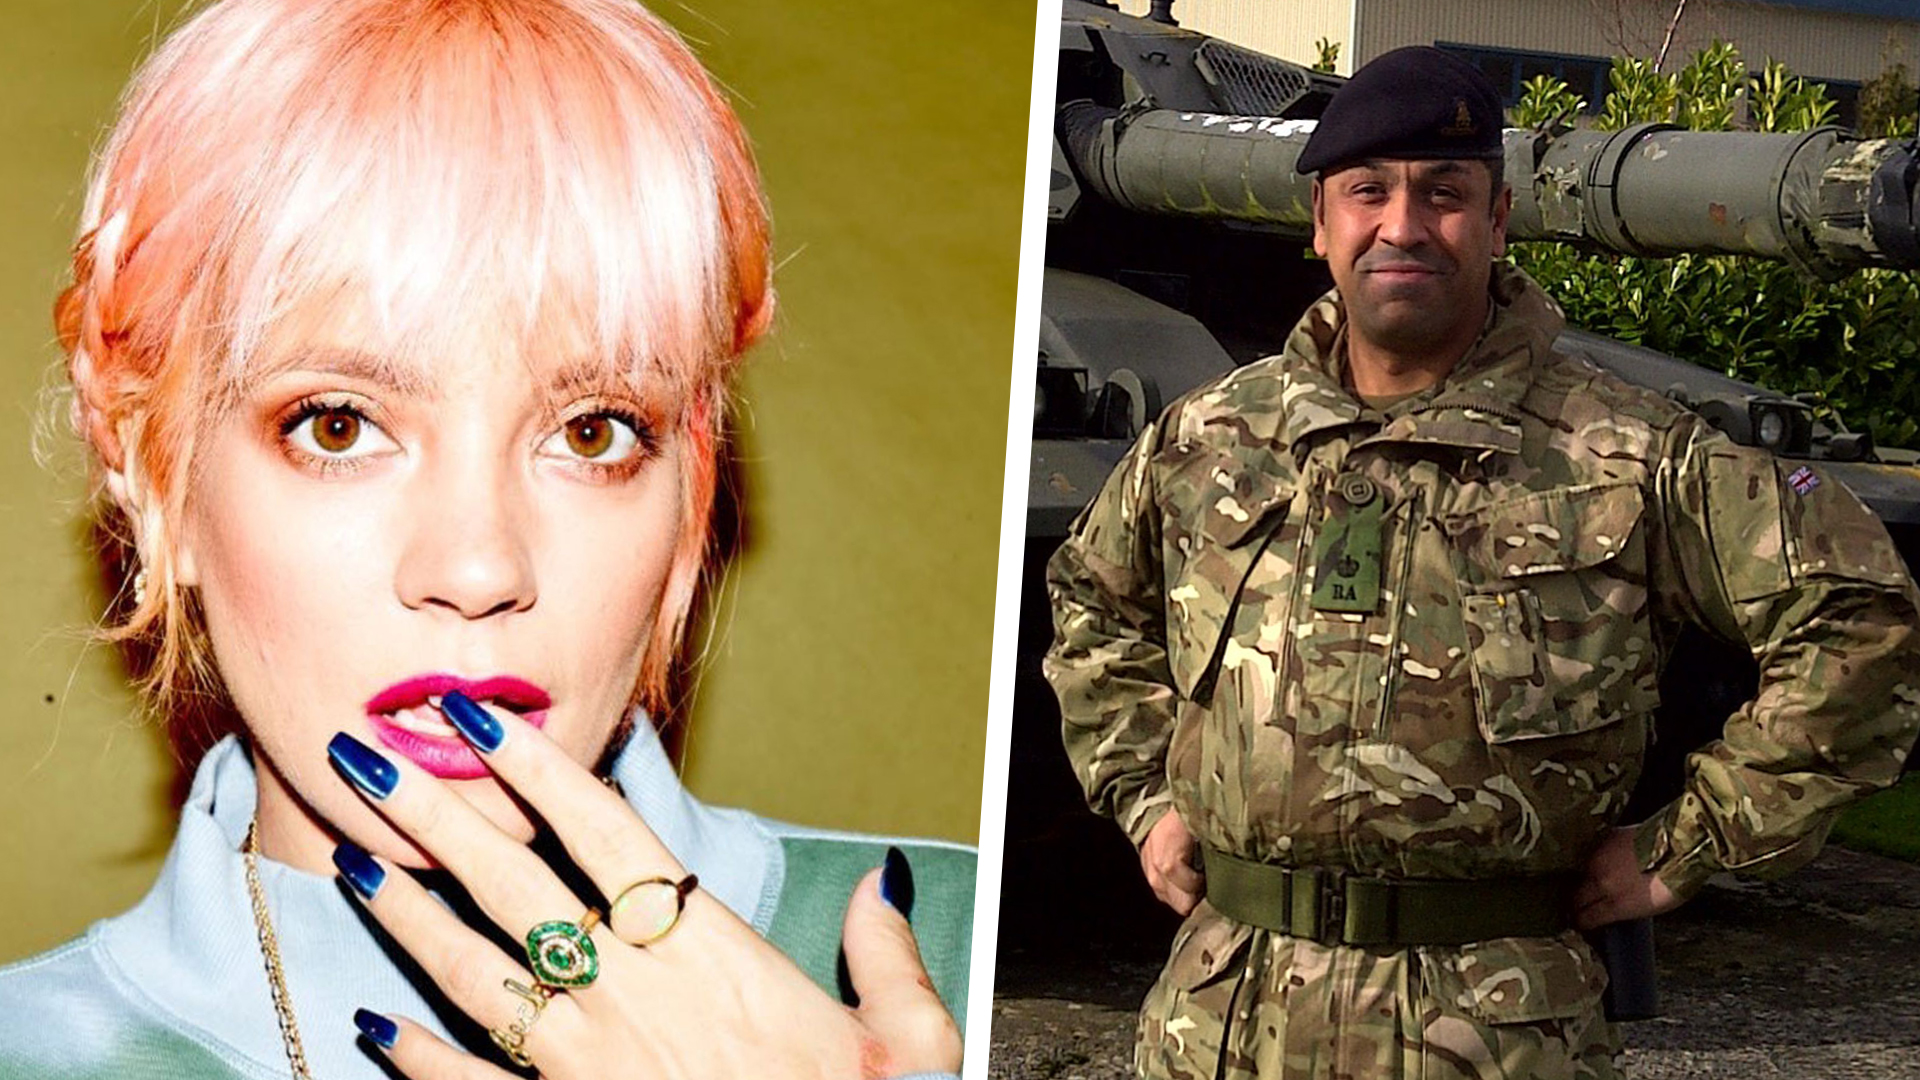 Lily Allen gets apology from soldier reported for racism